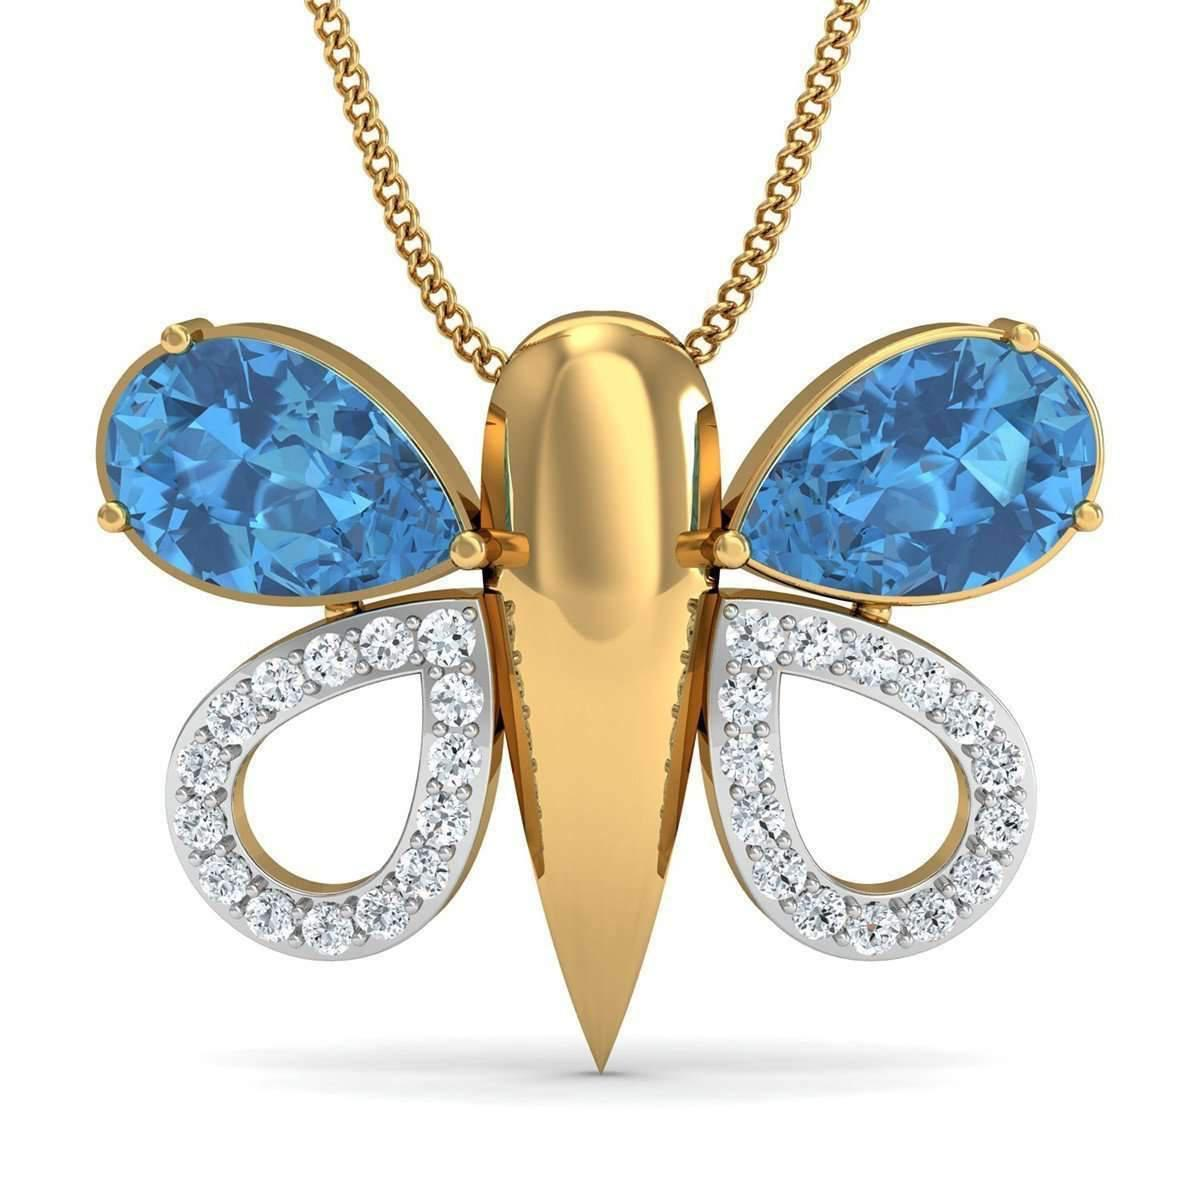 Diamoire Jewels Pear Cut Aquamarine and Diamond Butterfly Pendant in 18kt Yellow Gold 4Fnb45uqH3